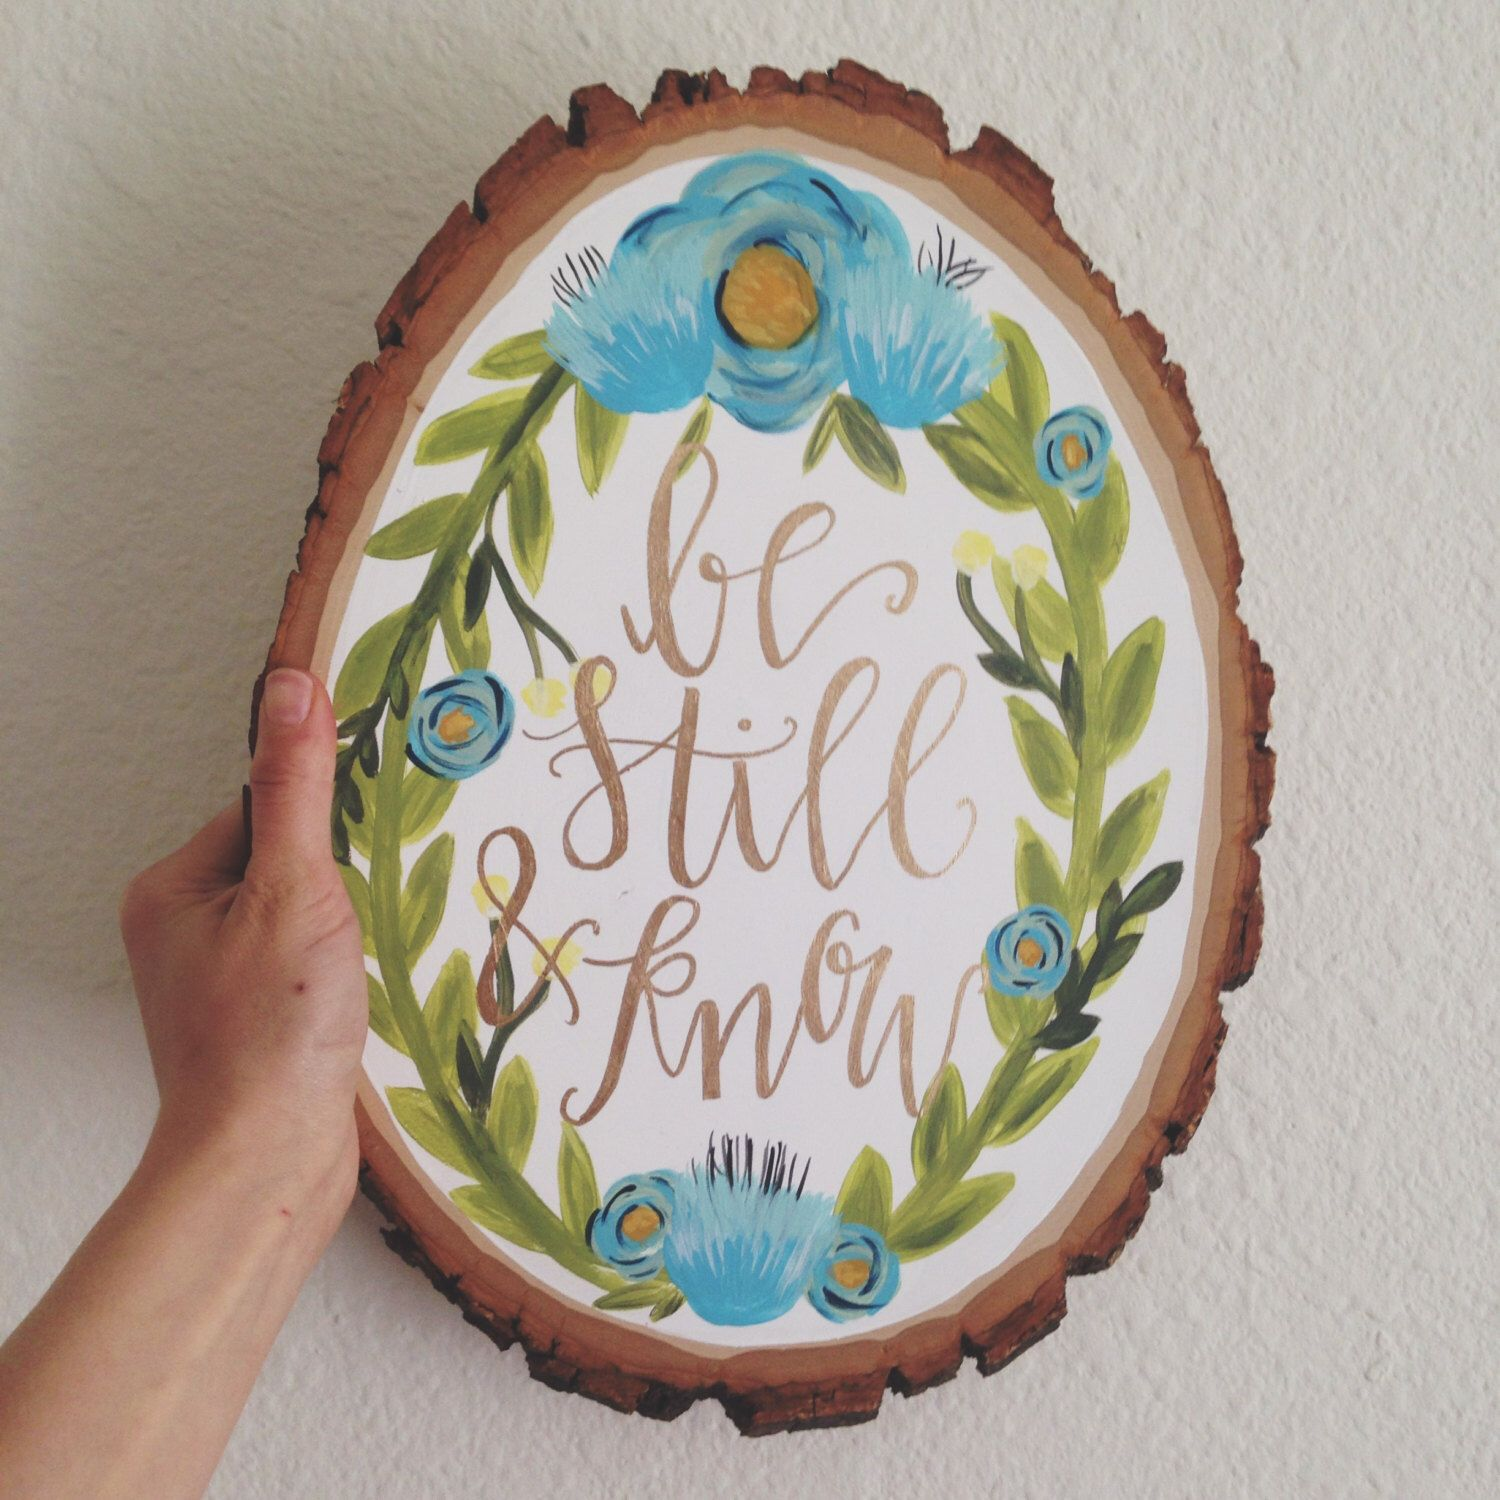 Art Painted On Wood Hand Lettered Wood Slice Blue Floral Wreath Painting